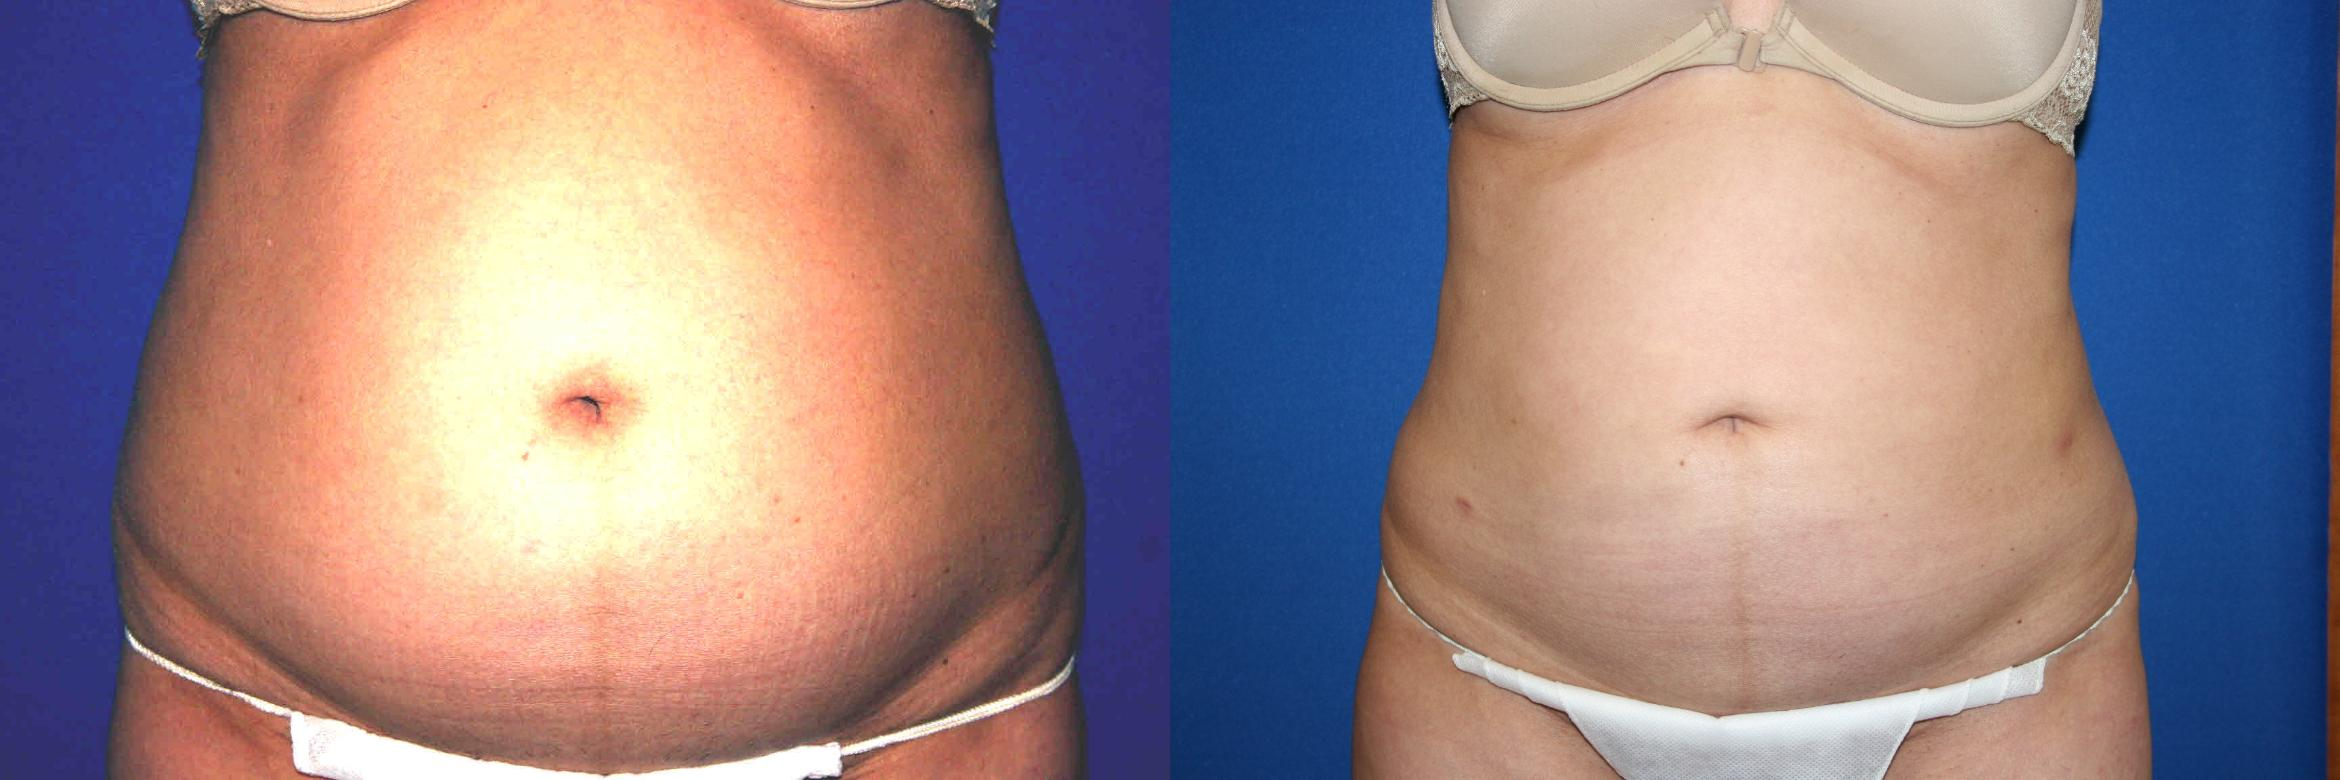 Liposuction Case 30 Before & After View #1 | Palo Alto, CA | Daryl K. Hoffman, MD